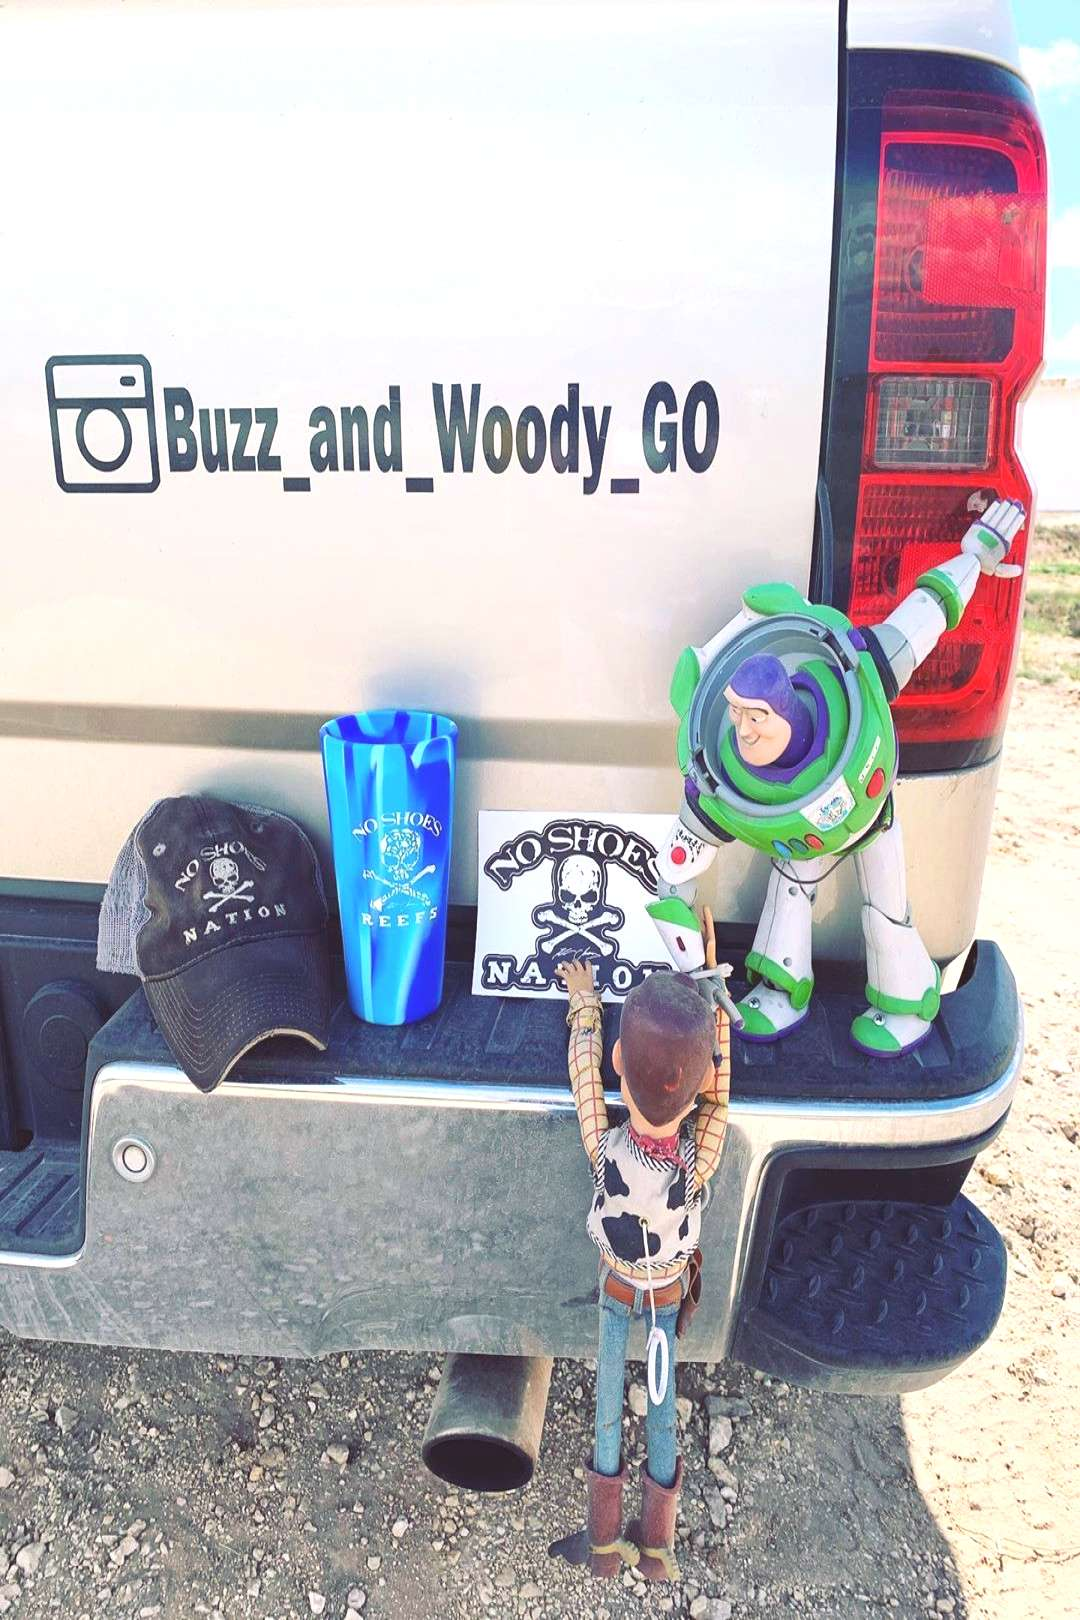 Buzz and Woody GO on June 01 2020 and 1 person shoes